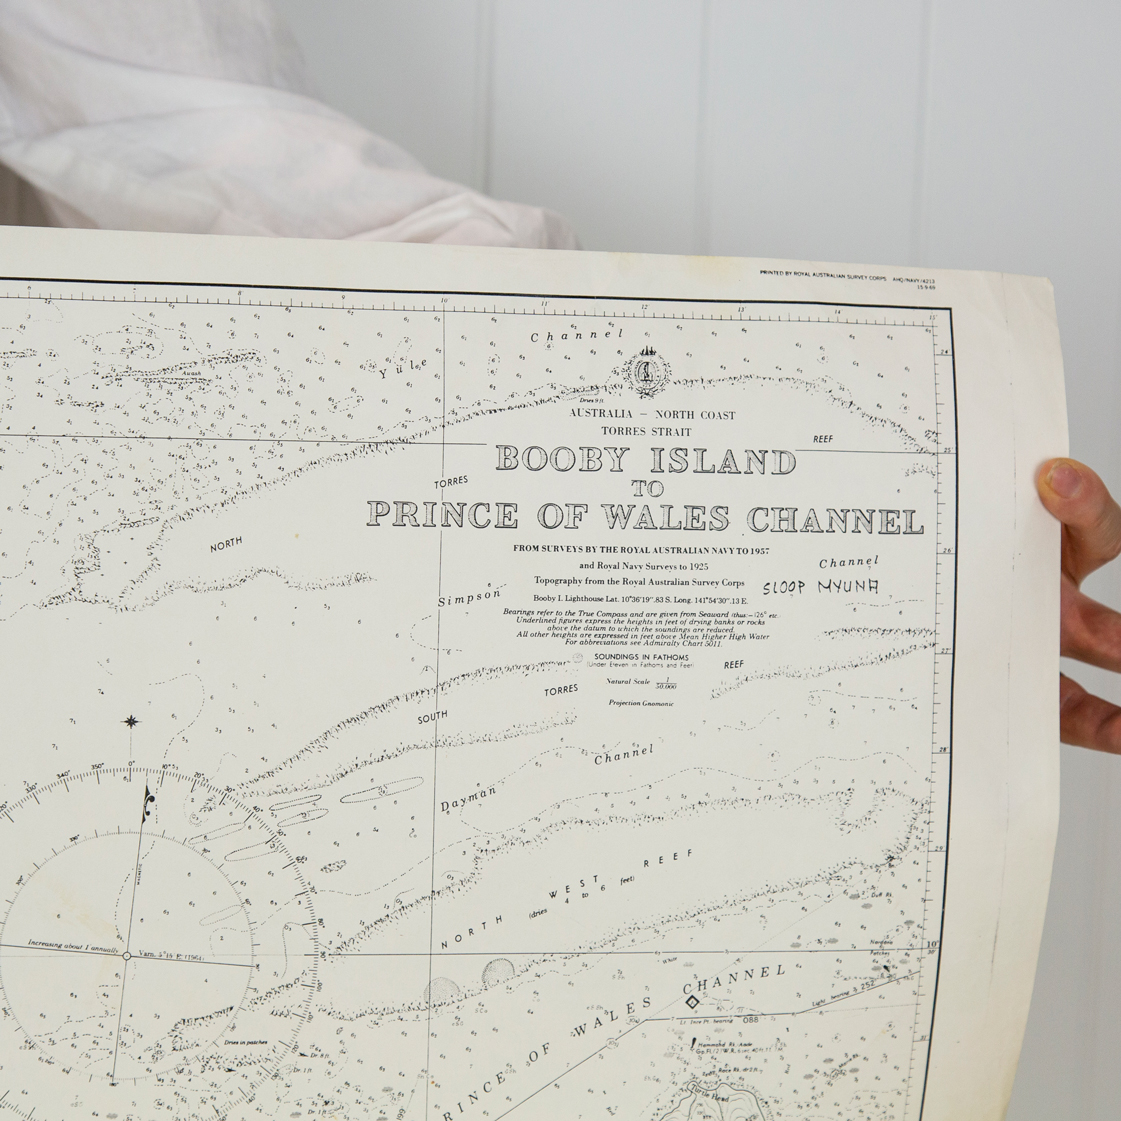 Torres Strait - Booby Island to Prince of Wales Channel Chart/Map